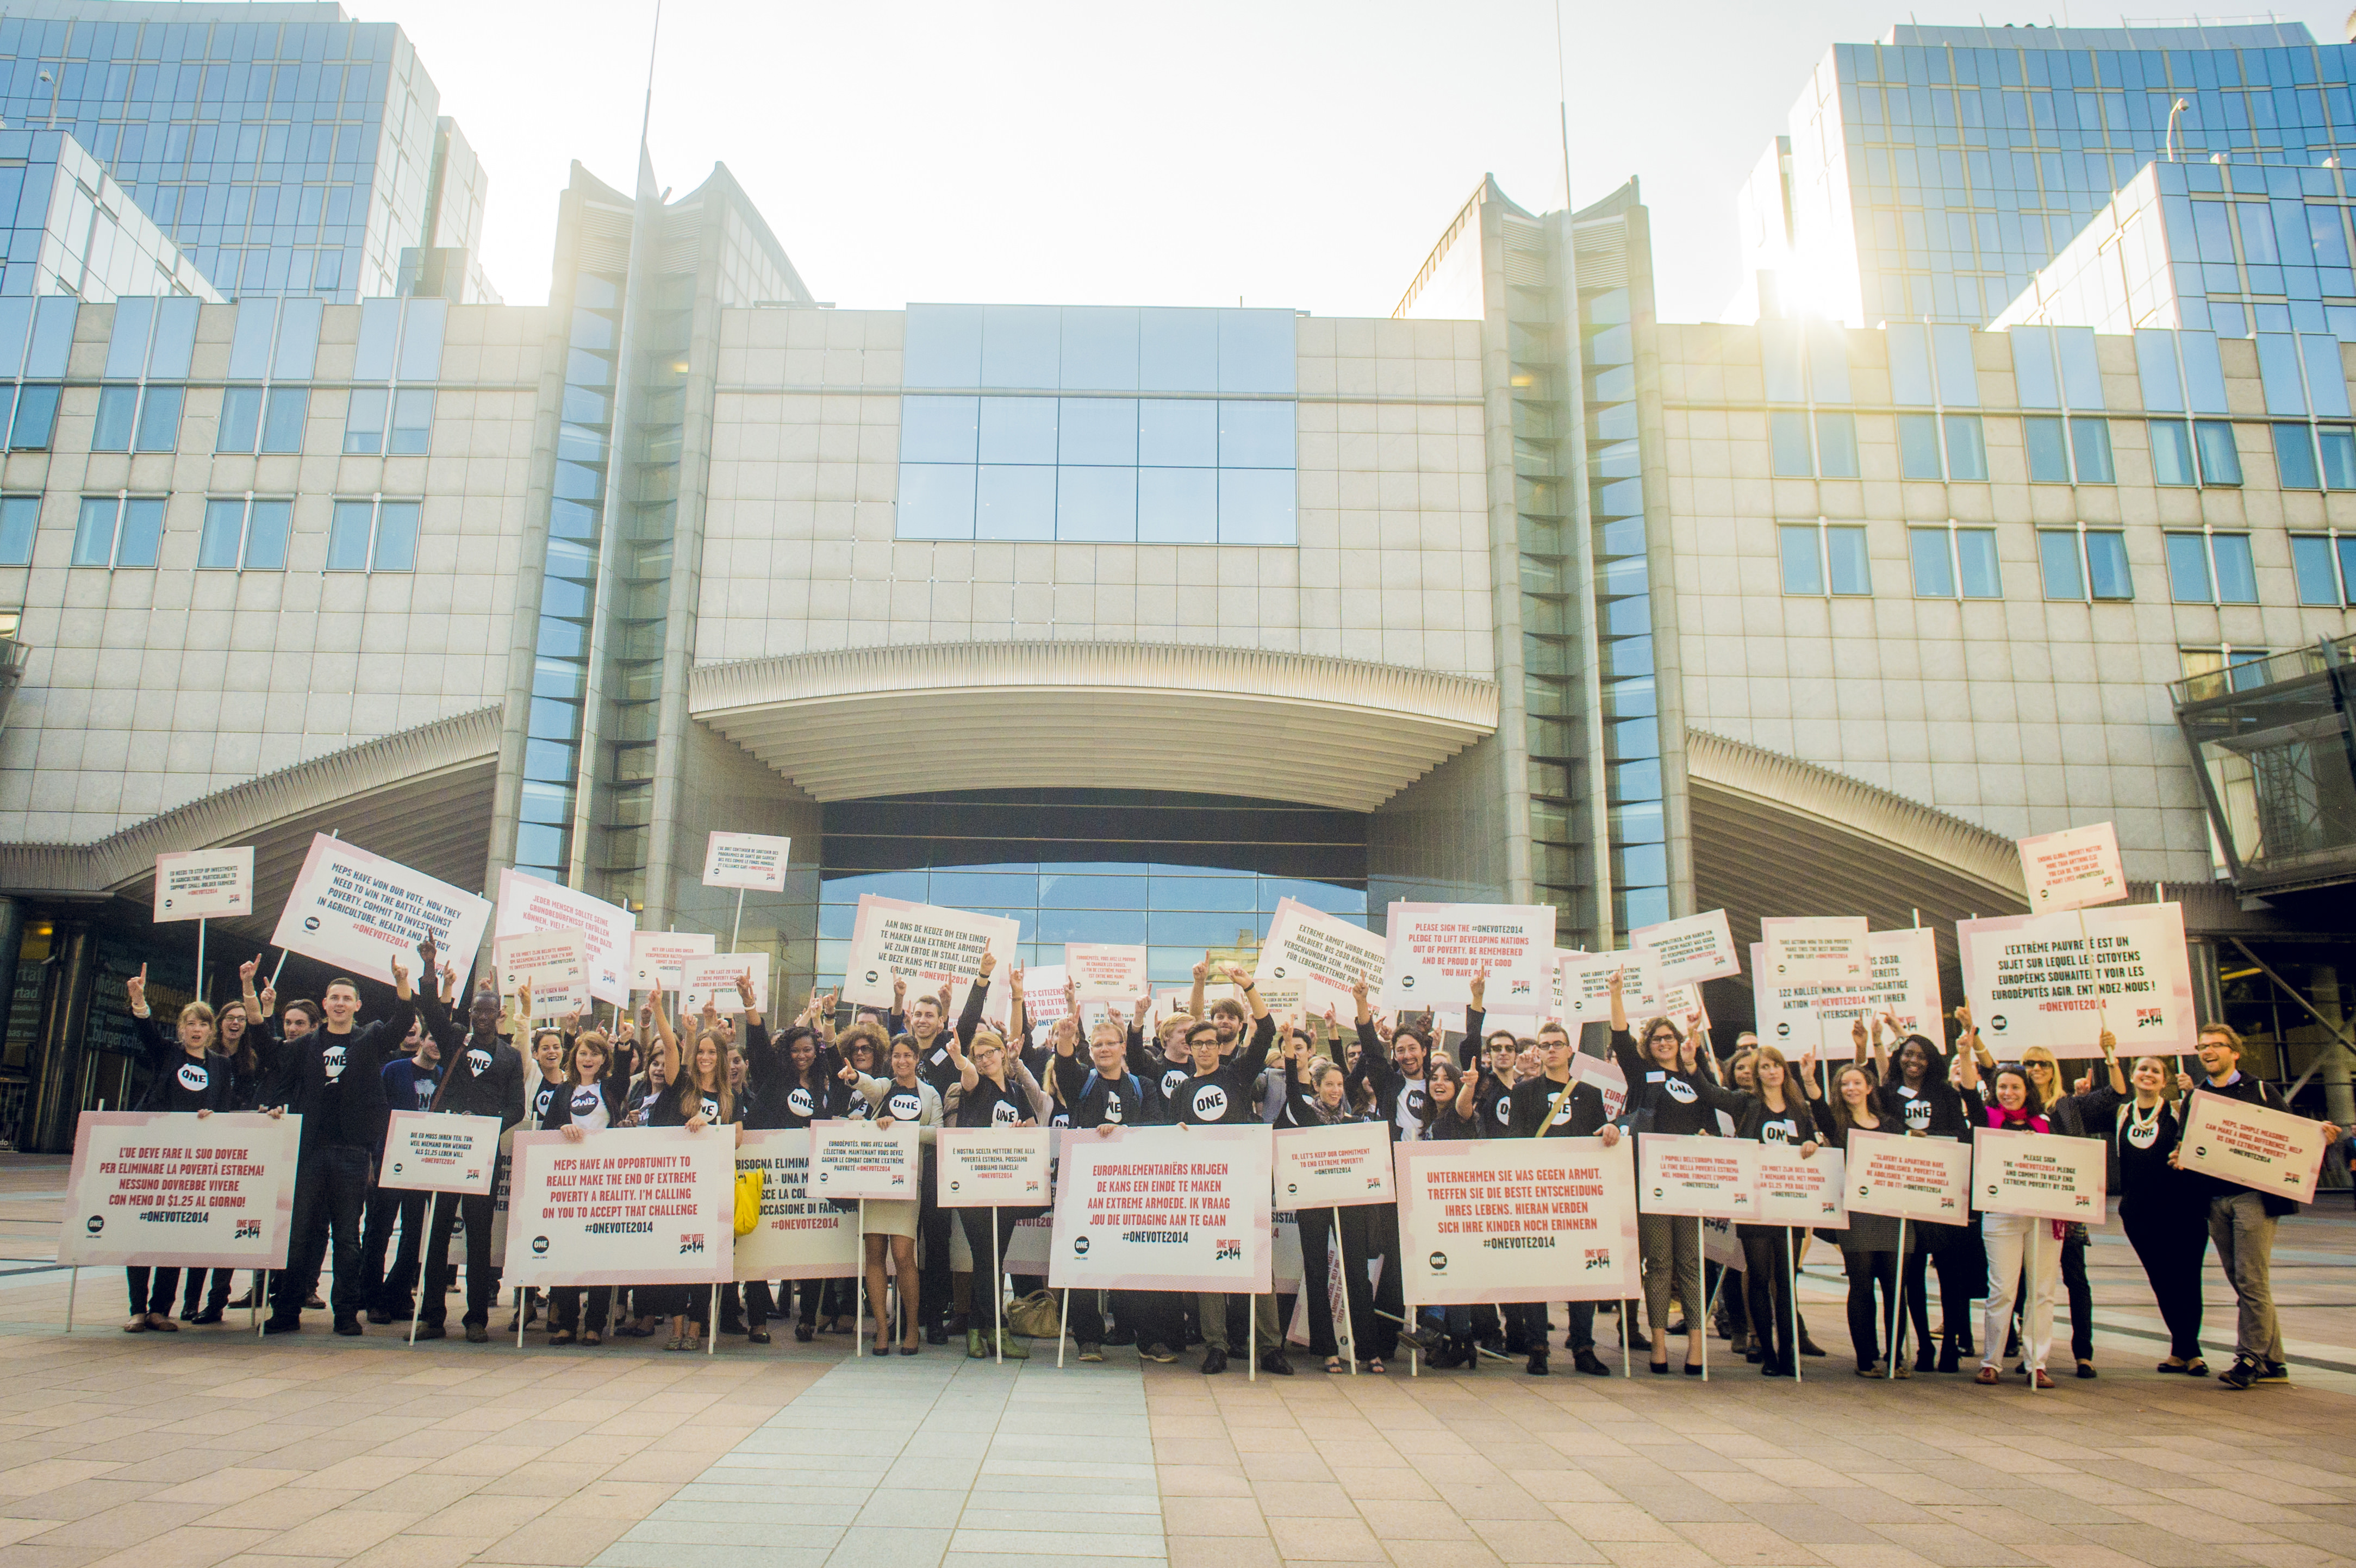 European Parliament takeover: 130 Youth Ambassadors take your tweets to the streets